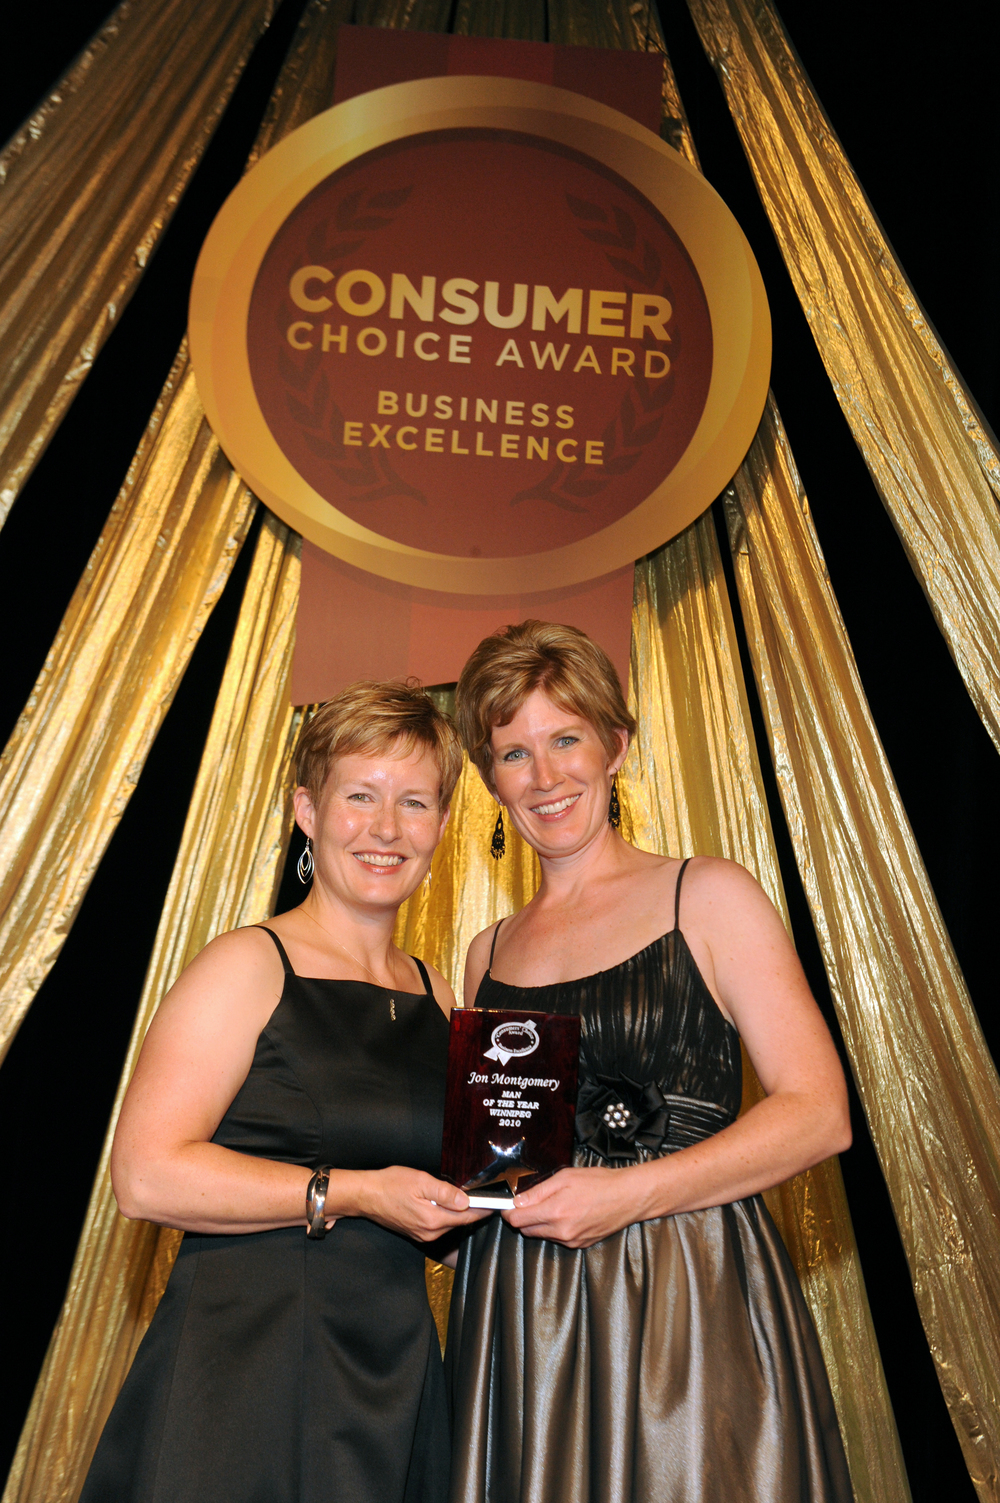 consumers choice awards.jpg